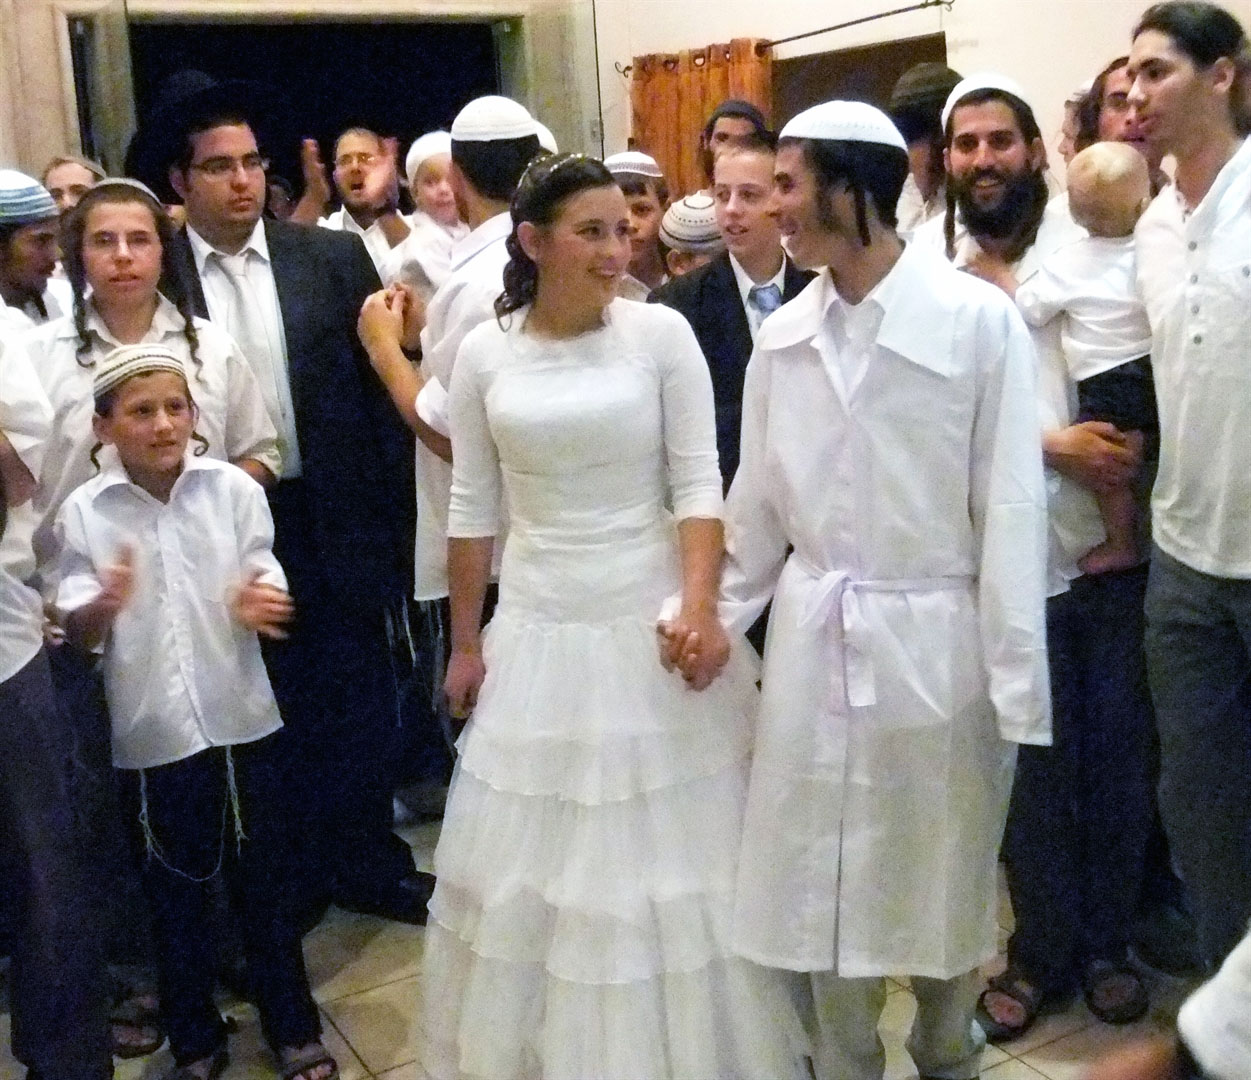 An Orthodox Jewish wedding in Jerusalem: Traditionally, on the day of his wedding, the chatan (groom) wears first wears the kittel (white linen garment), which signifies purity, holiness and new beginnings.  Thereafter, he wears it on special occasions such as Rosh Hashanah (New Year's), Yom Kippur (Day of Atonement), and Pesach (Passover).